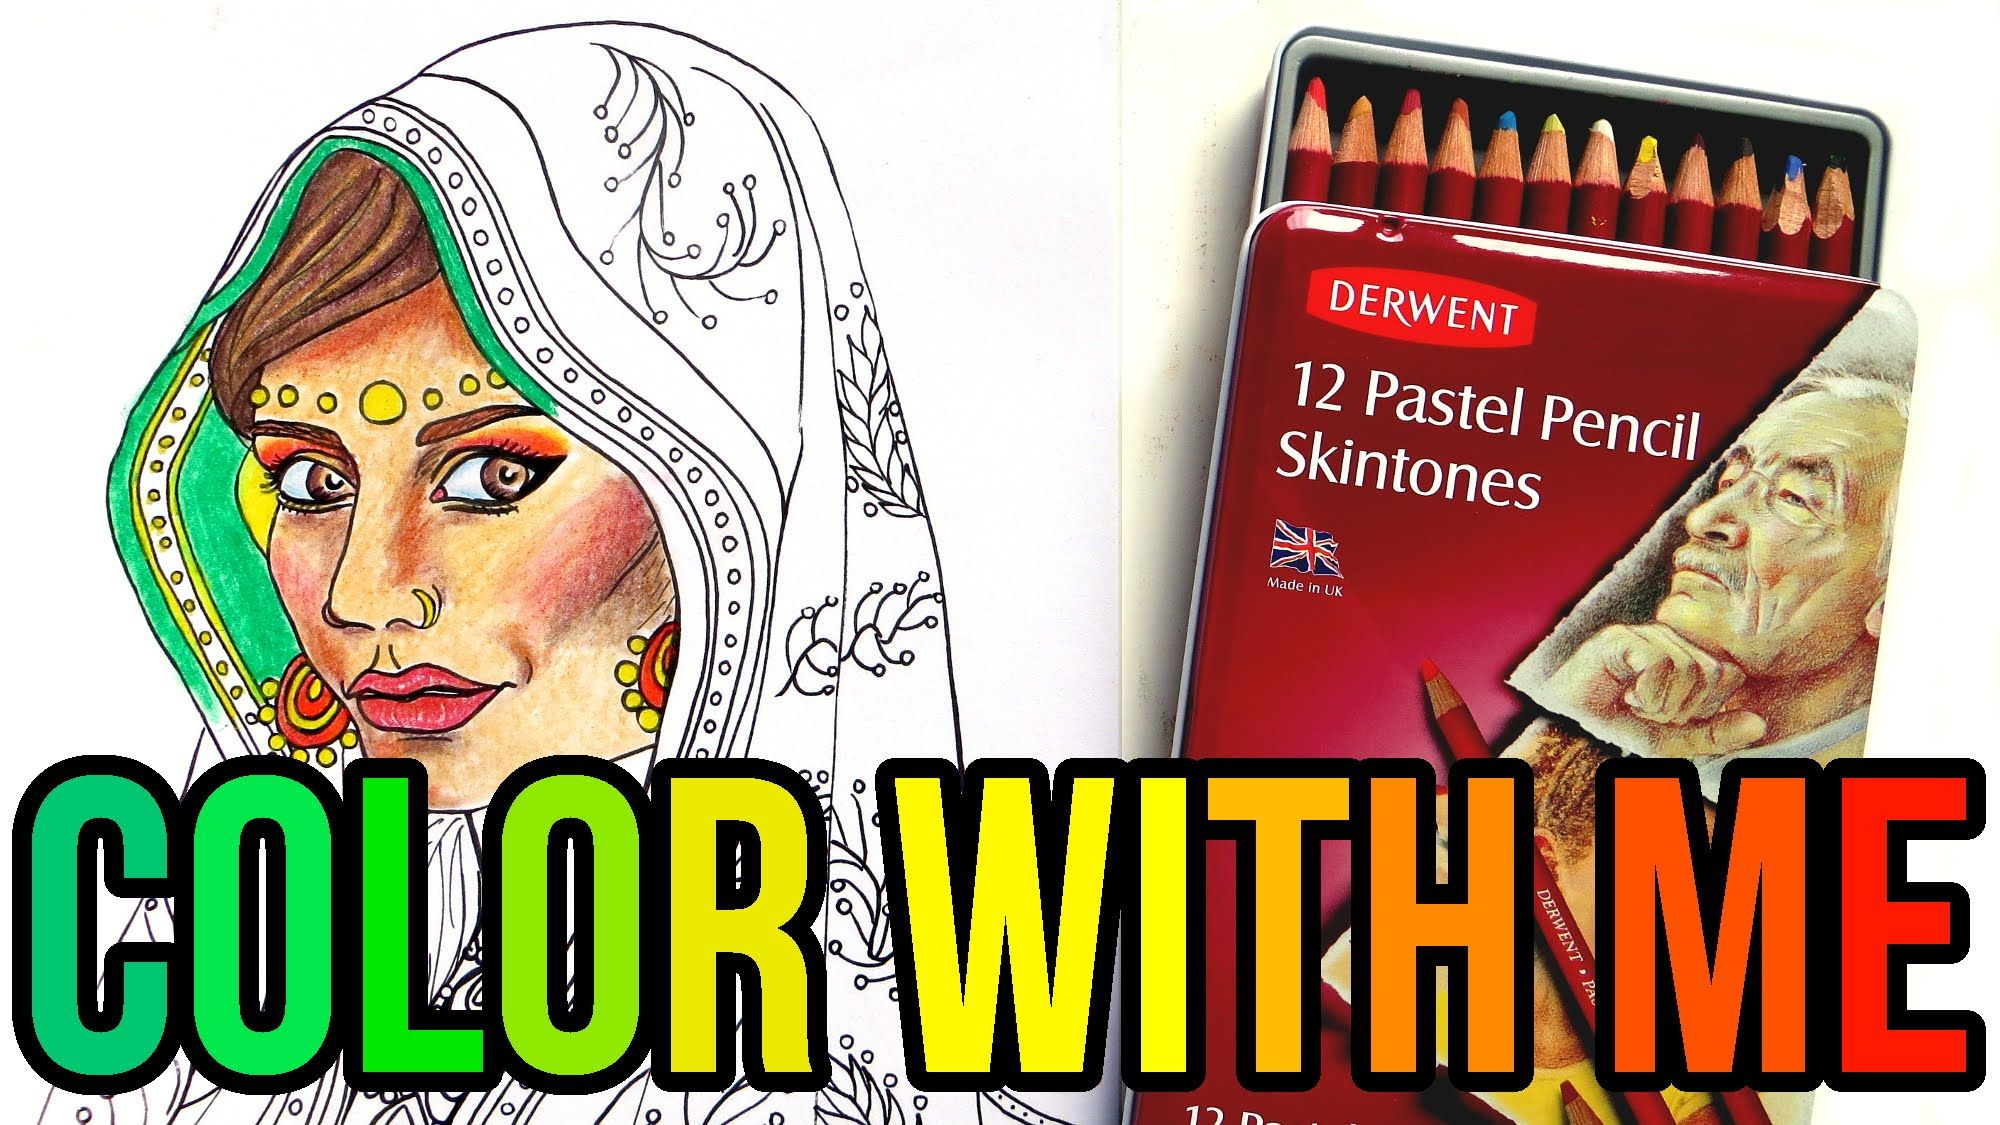 FREE Printable India Adult Coloring Page || Color with Me! Coloring with Pastel Pencils. I'm using Derwent pastel pencils and Koh-i-Noor Toison Toison D´or soft pastels to color this printable Indian girl coloring page that you can download for free.